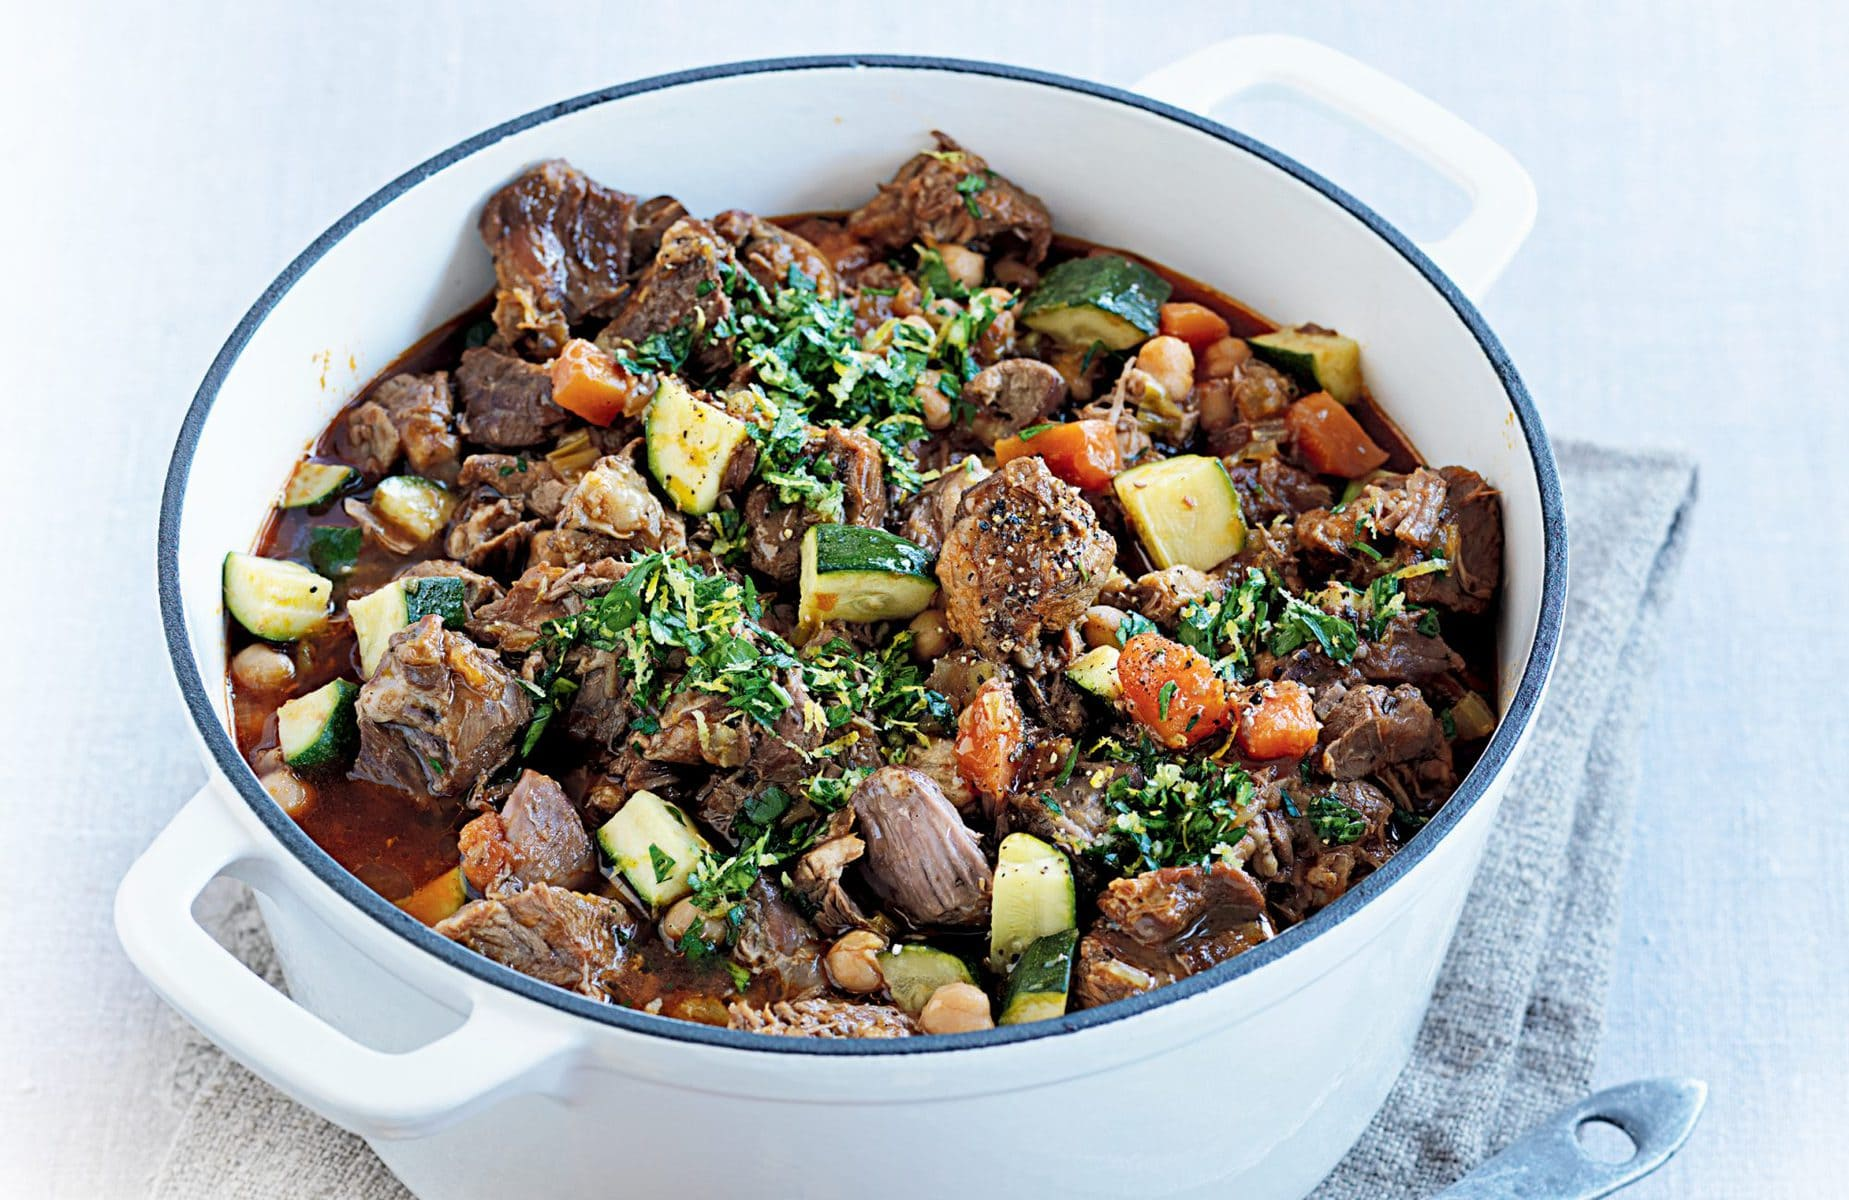 Slow-cooked lamb with gremolata